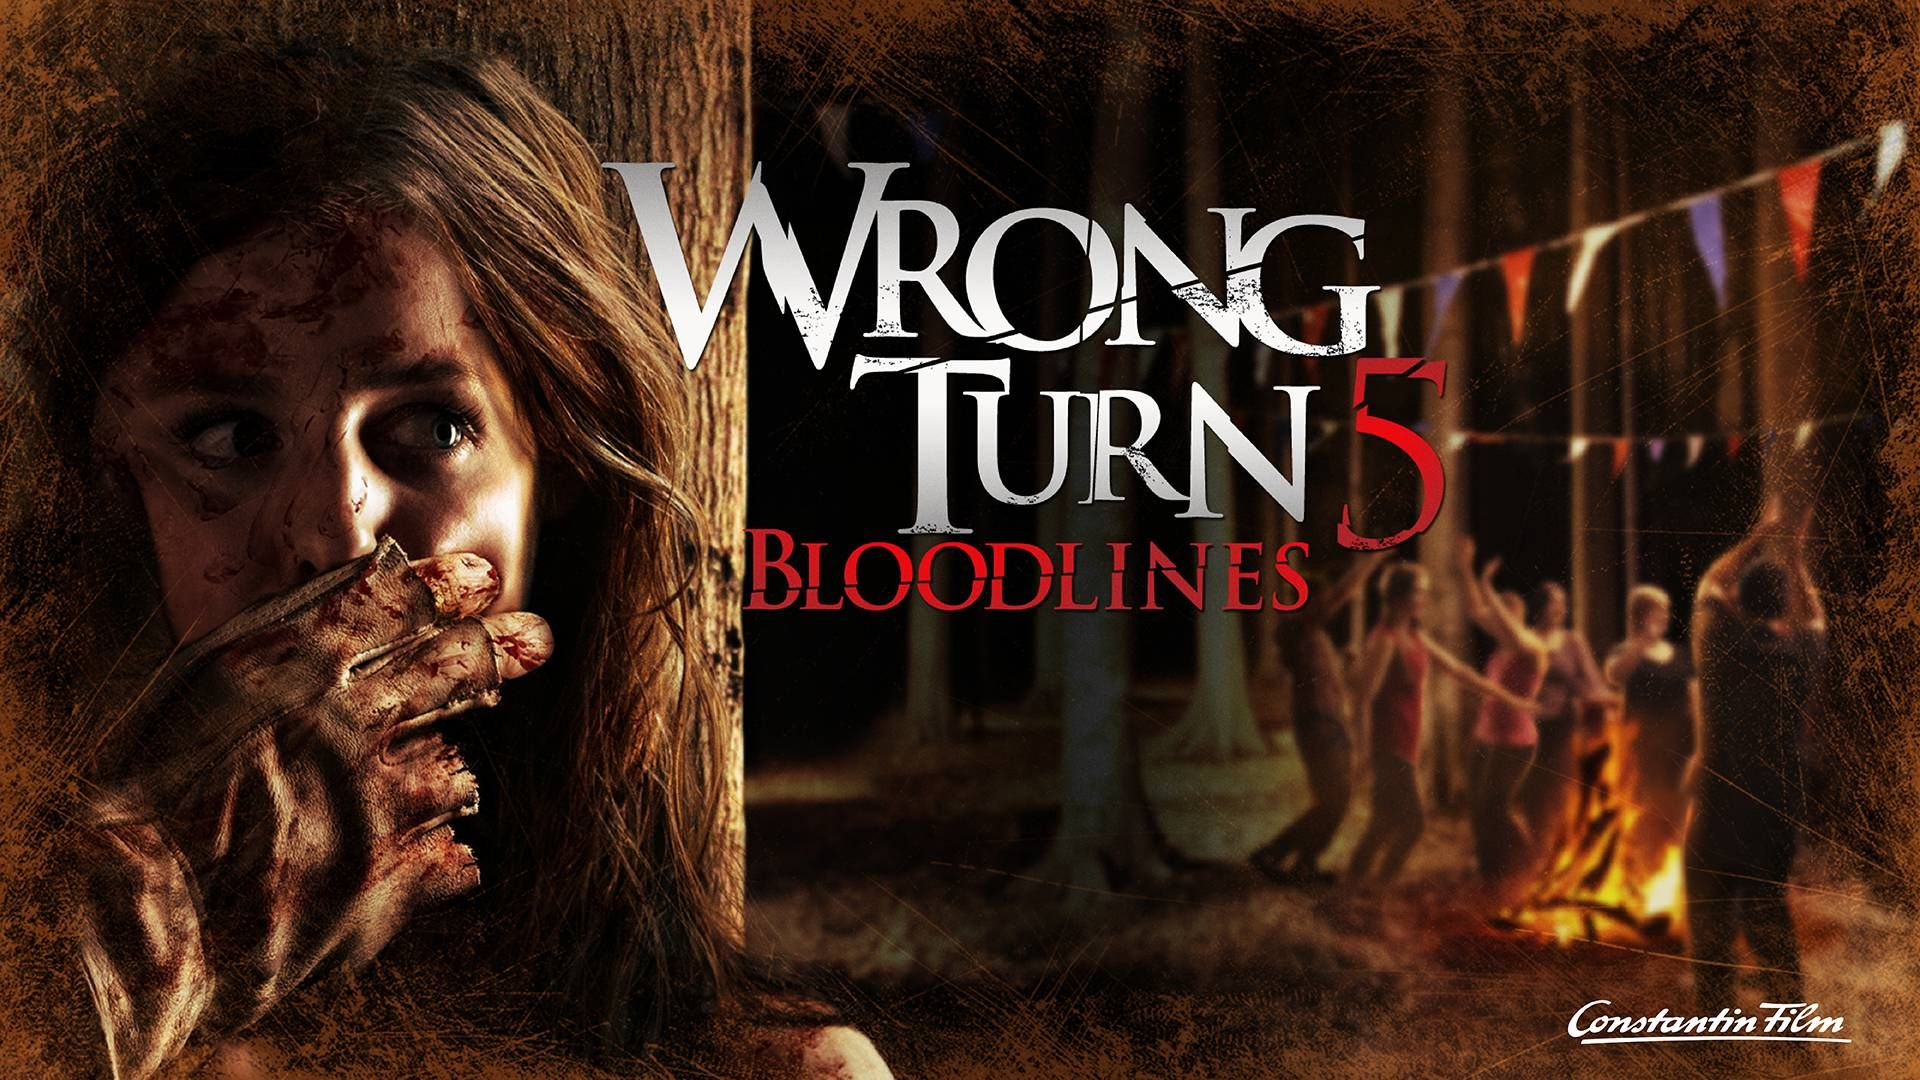 Wrong turn 5 Bloodlines | Full movies download, Download movies, Full movies